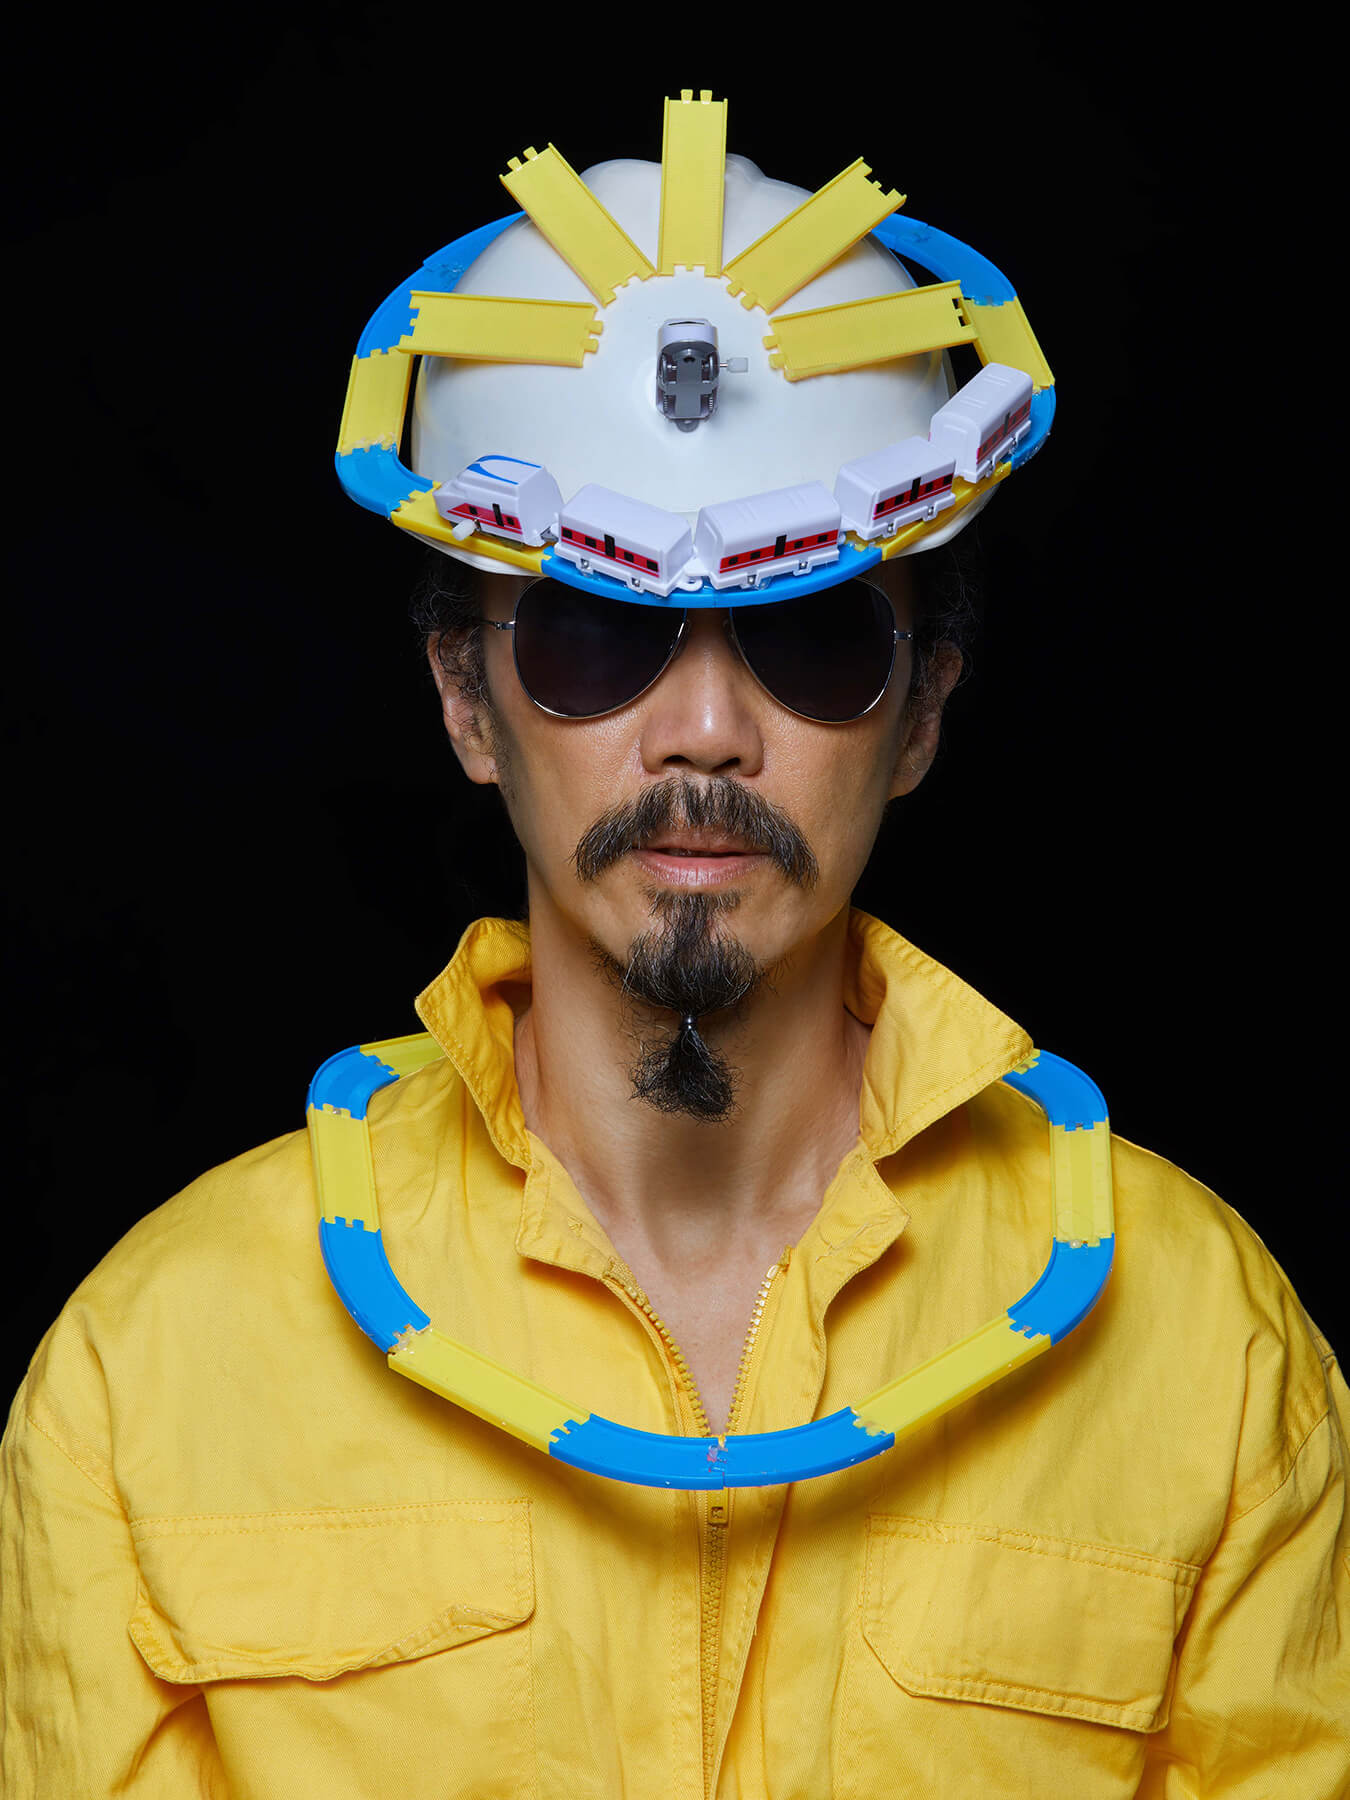 12 Nov 2017 Derong is wearing yellow overalls, with toy trains and train tracks as headgear